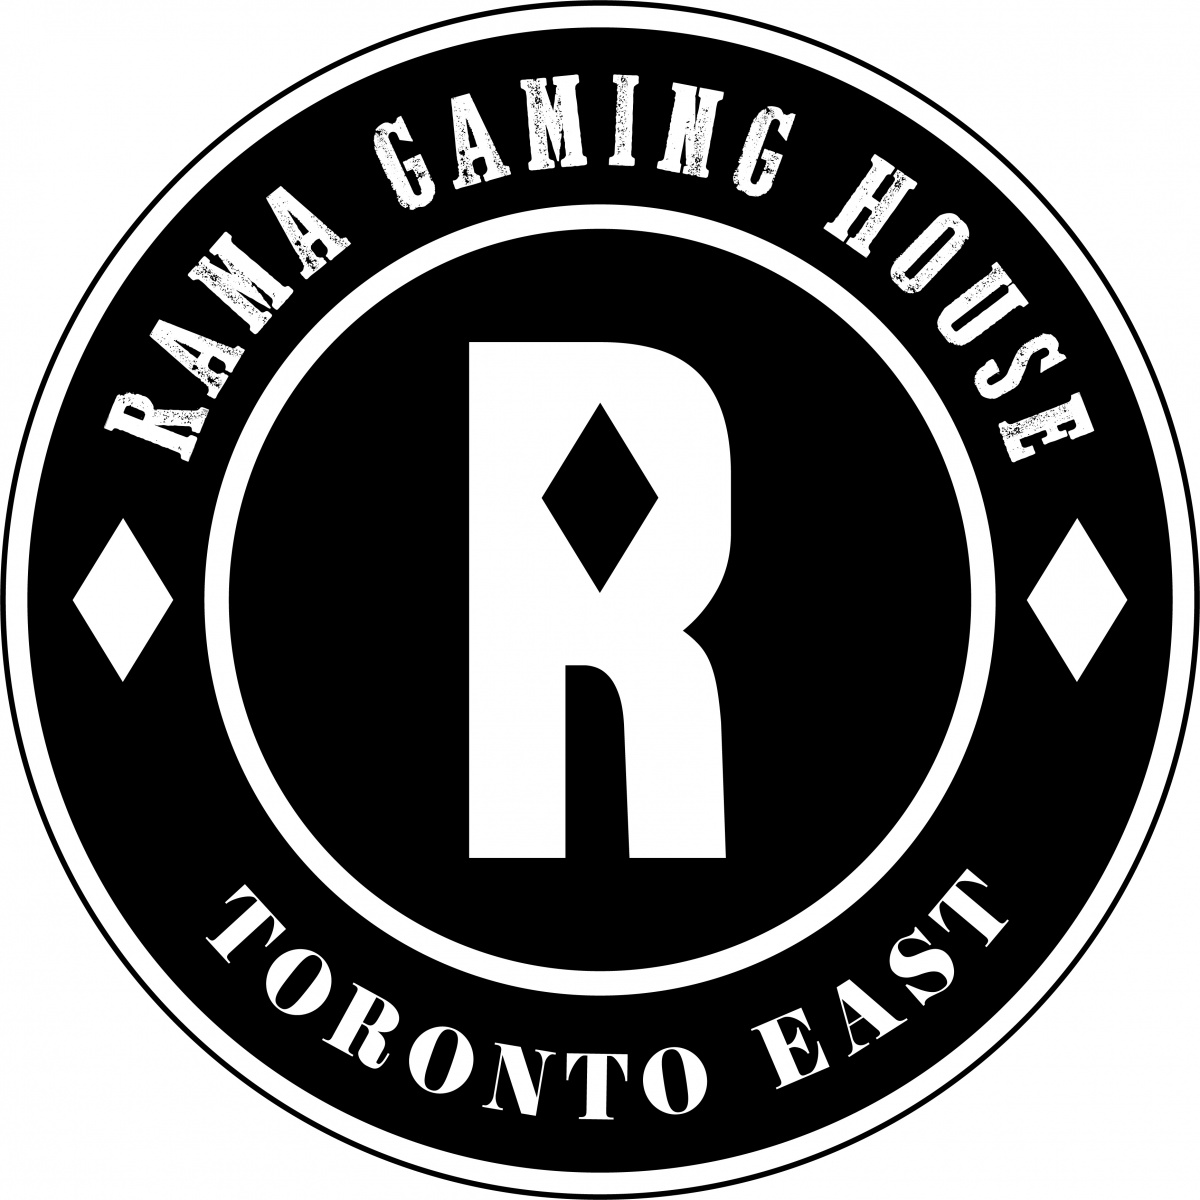 Funds proudly raised through Charitable Gaming at Rama Toronto East